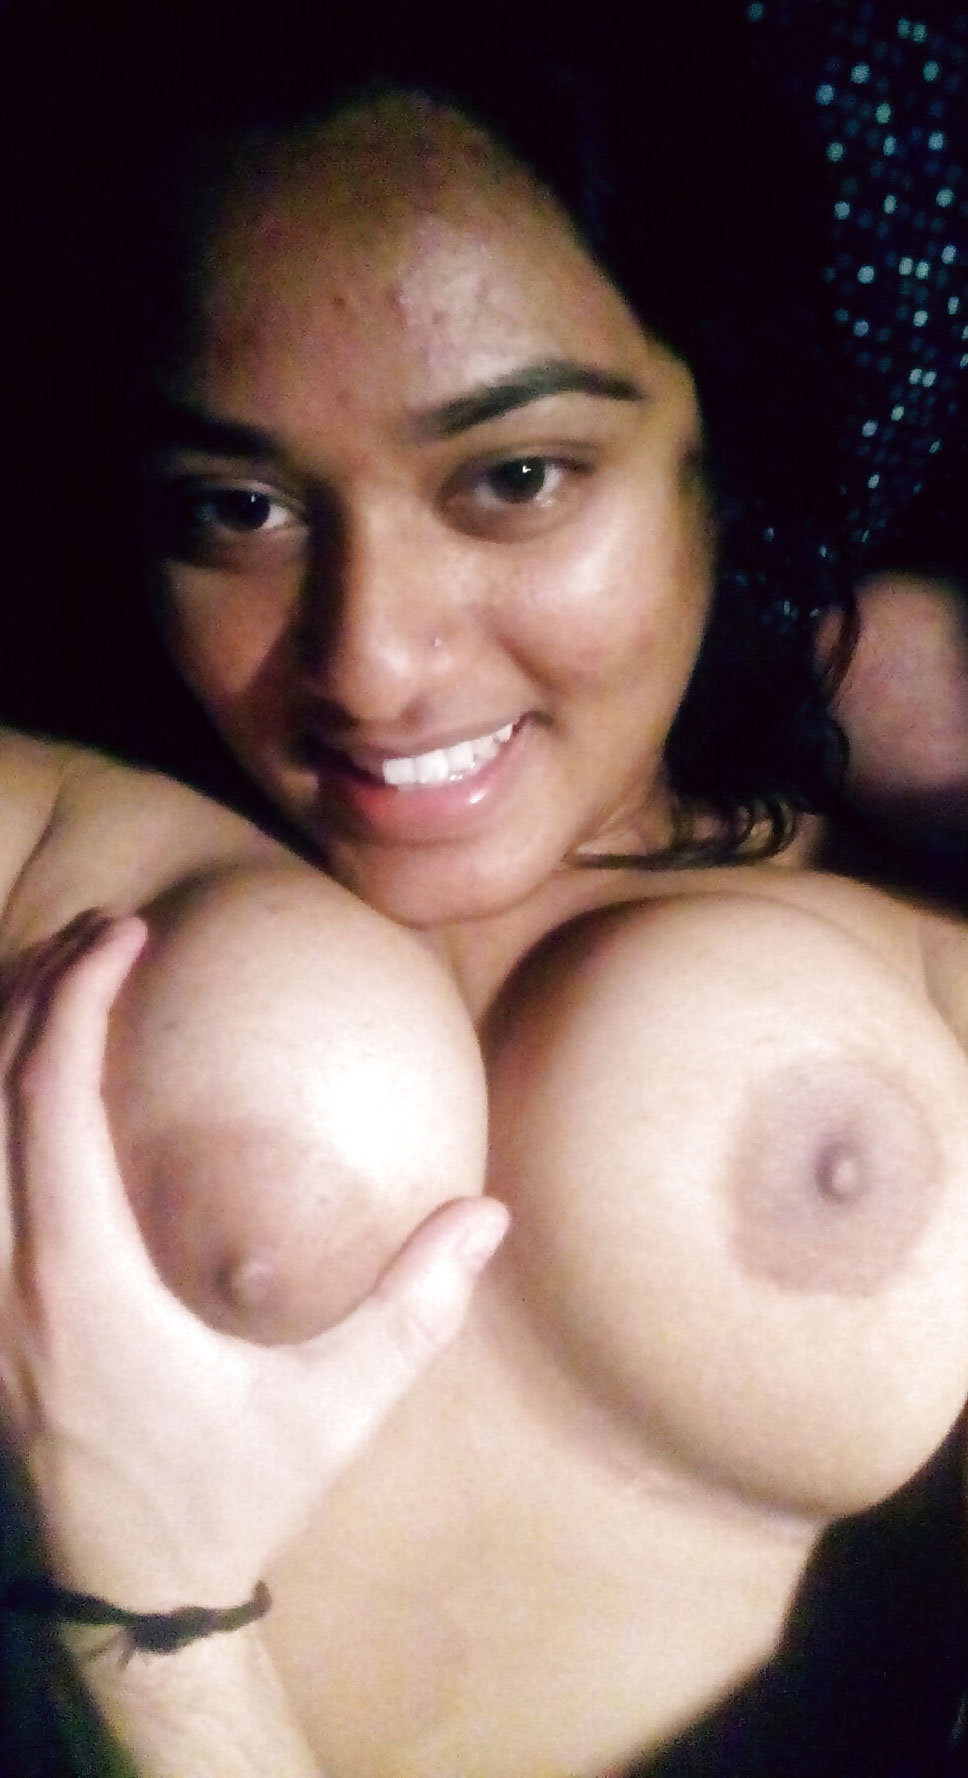 Desi young big tits girl instagram nude opinion you